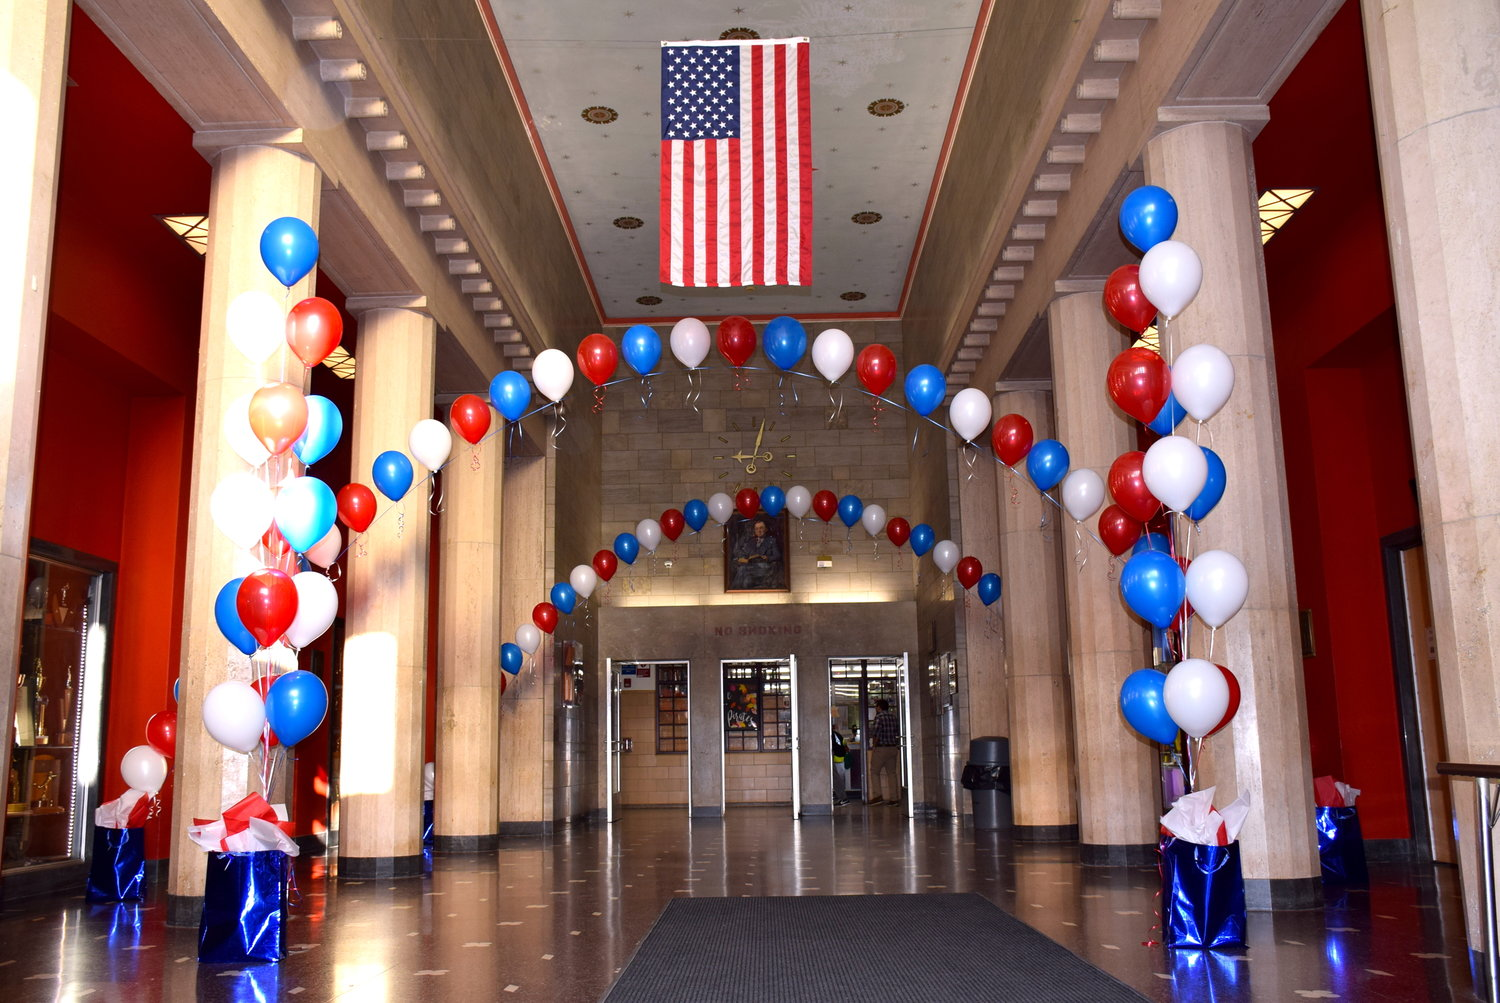 The front lobby of Mepham High was decorated with patriotic balloons to welcome retired U.S. Navy Petty Officer Ryan Shannon.